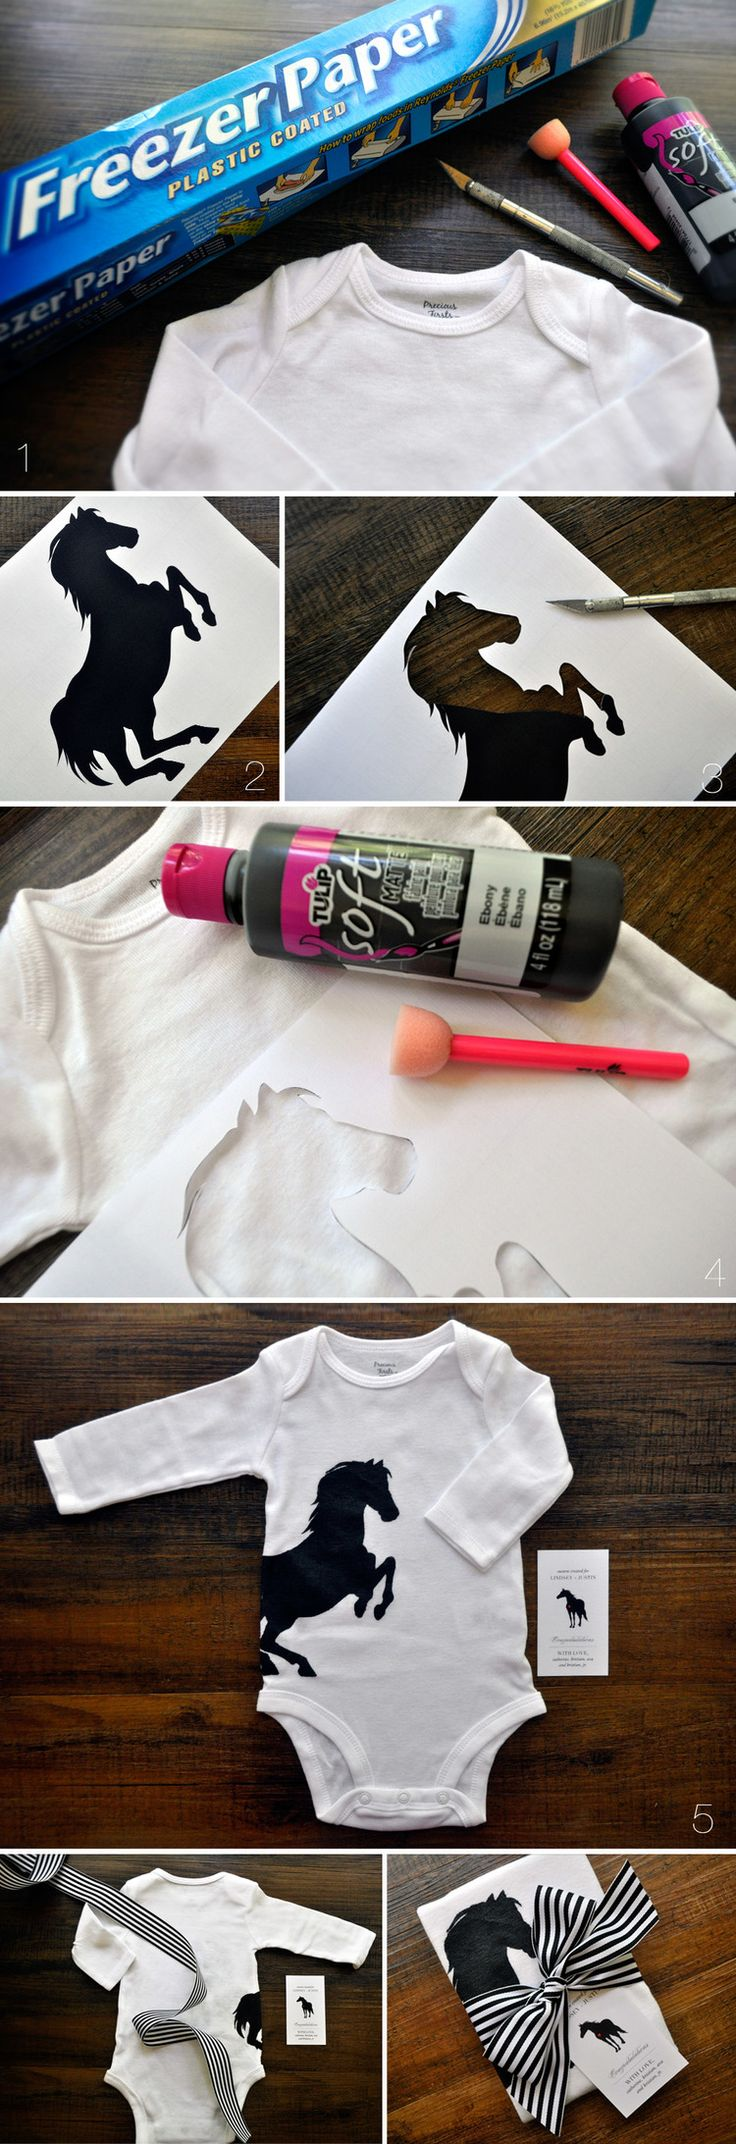 Design t shirt and get paid - Design T Shirt And Get Paid Design T Shirt And Get Paid Fabric Paint Pens